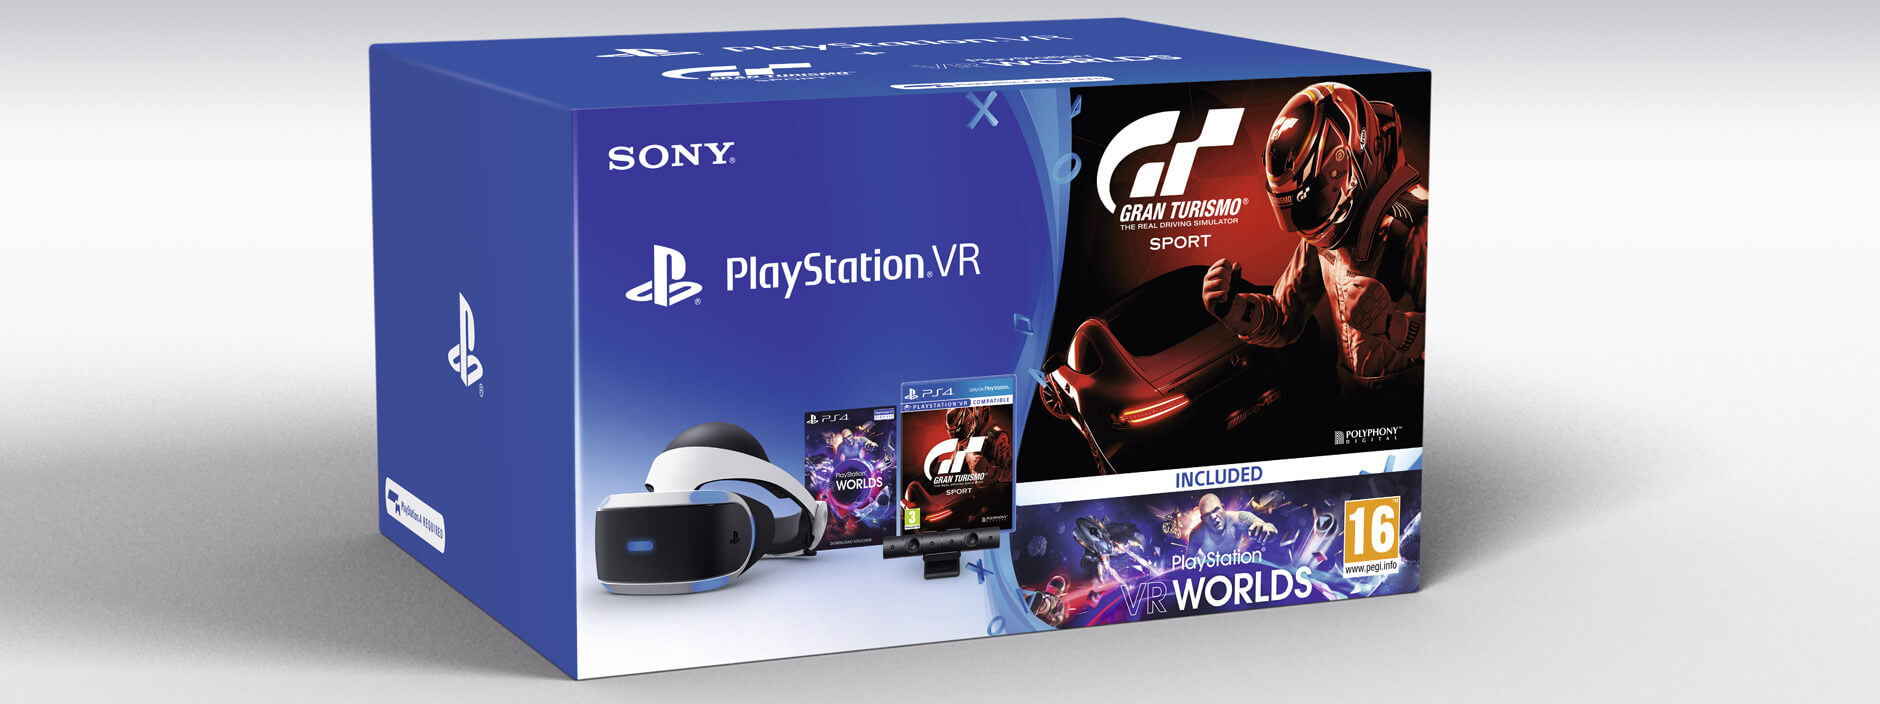 Sony PS VR (CUH-ZVR1EY) Система виртуальной реальности для PlayStation 4 + игра VRW VCH + игра GTS + PS4 Камера v2 [PS719951162] 4 door mercedes m class 1998 2004 nld smerm9832